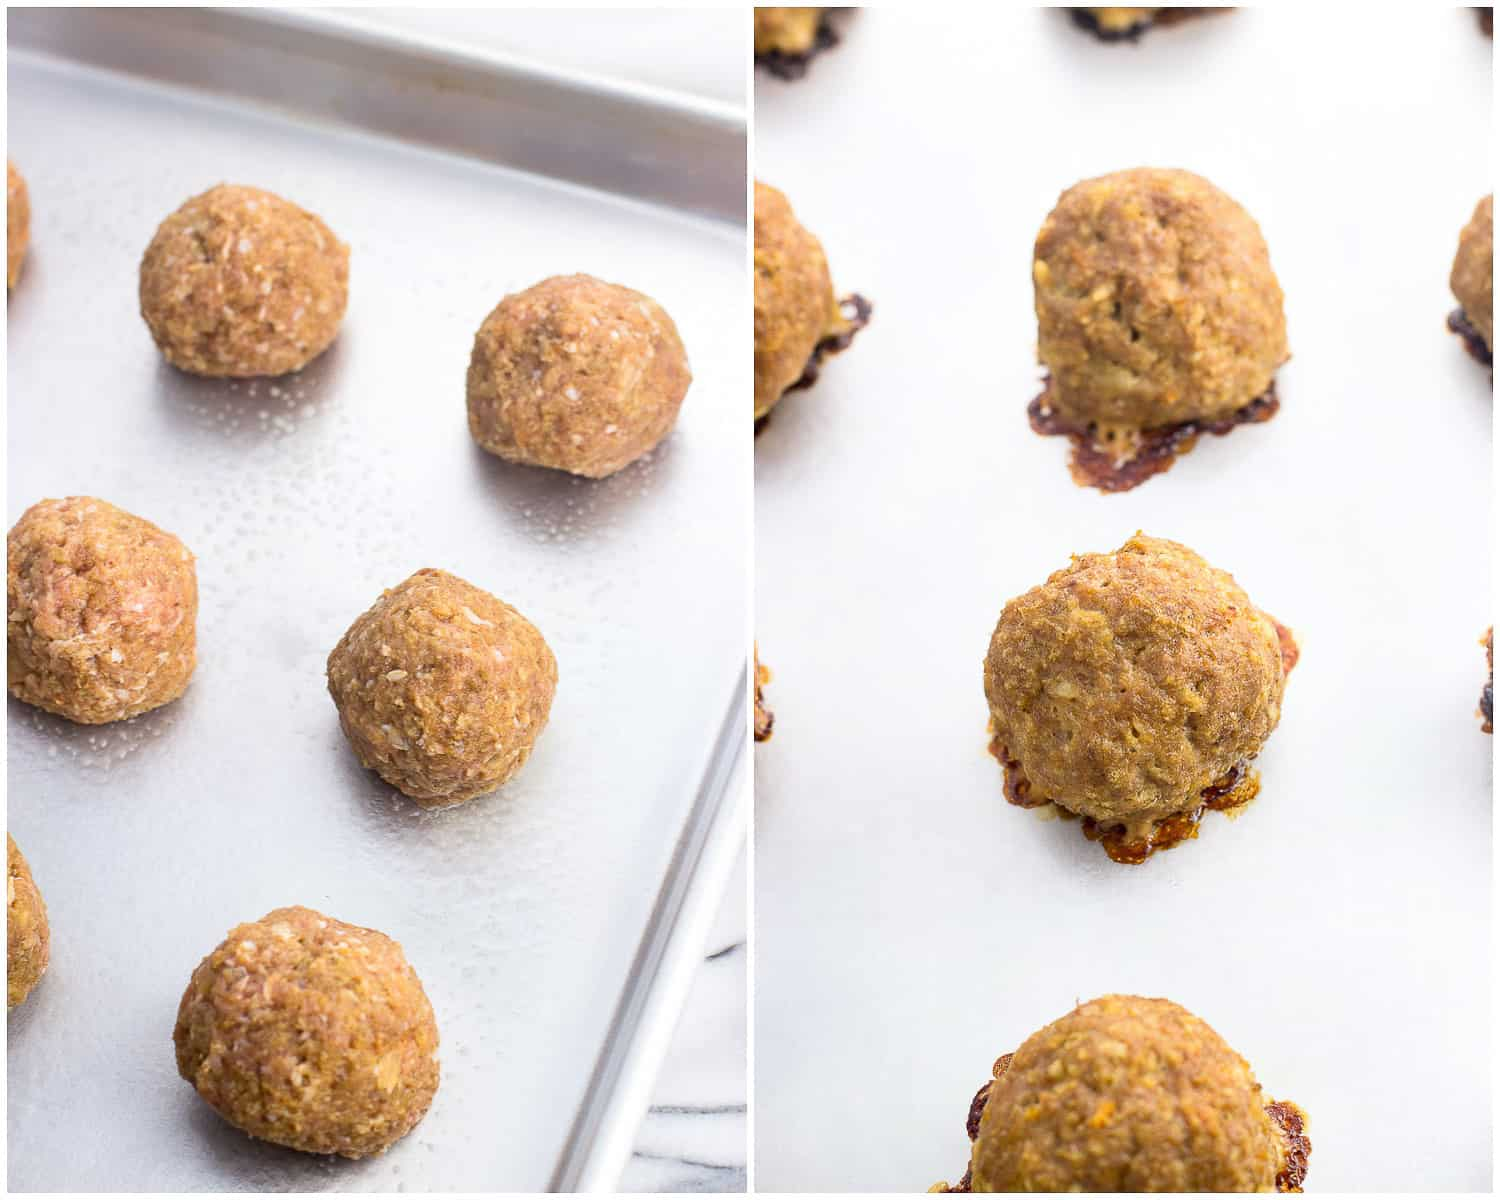 A side-by-side picture of meatballs on a baking sheet: raw on the left and cooked on the right